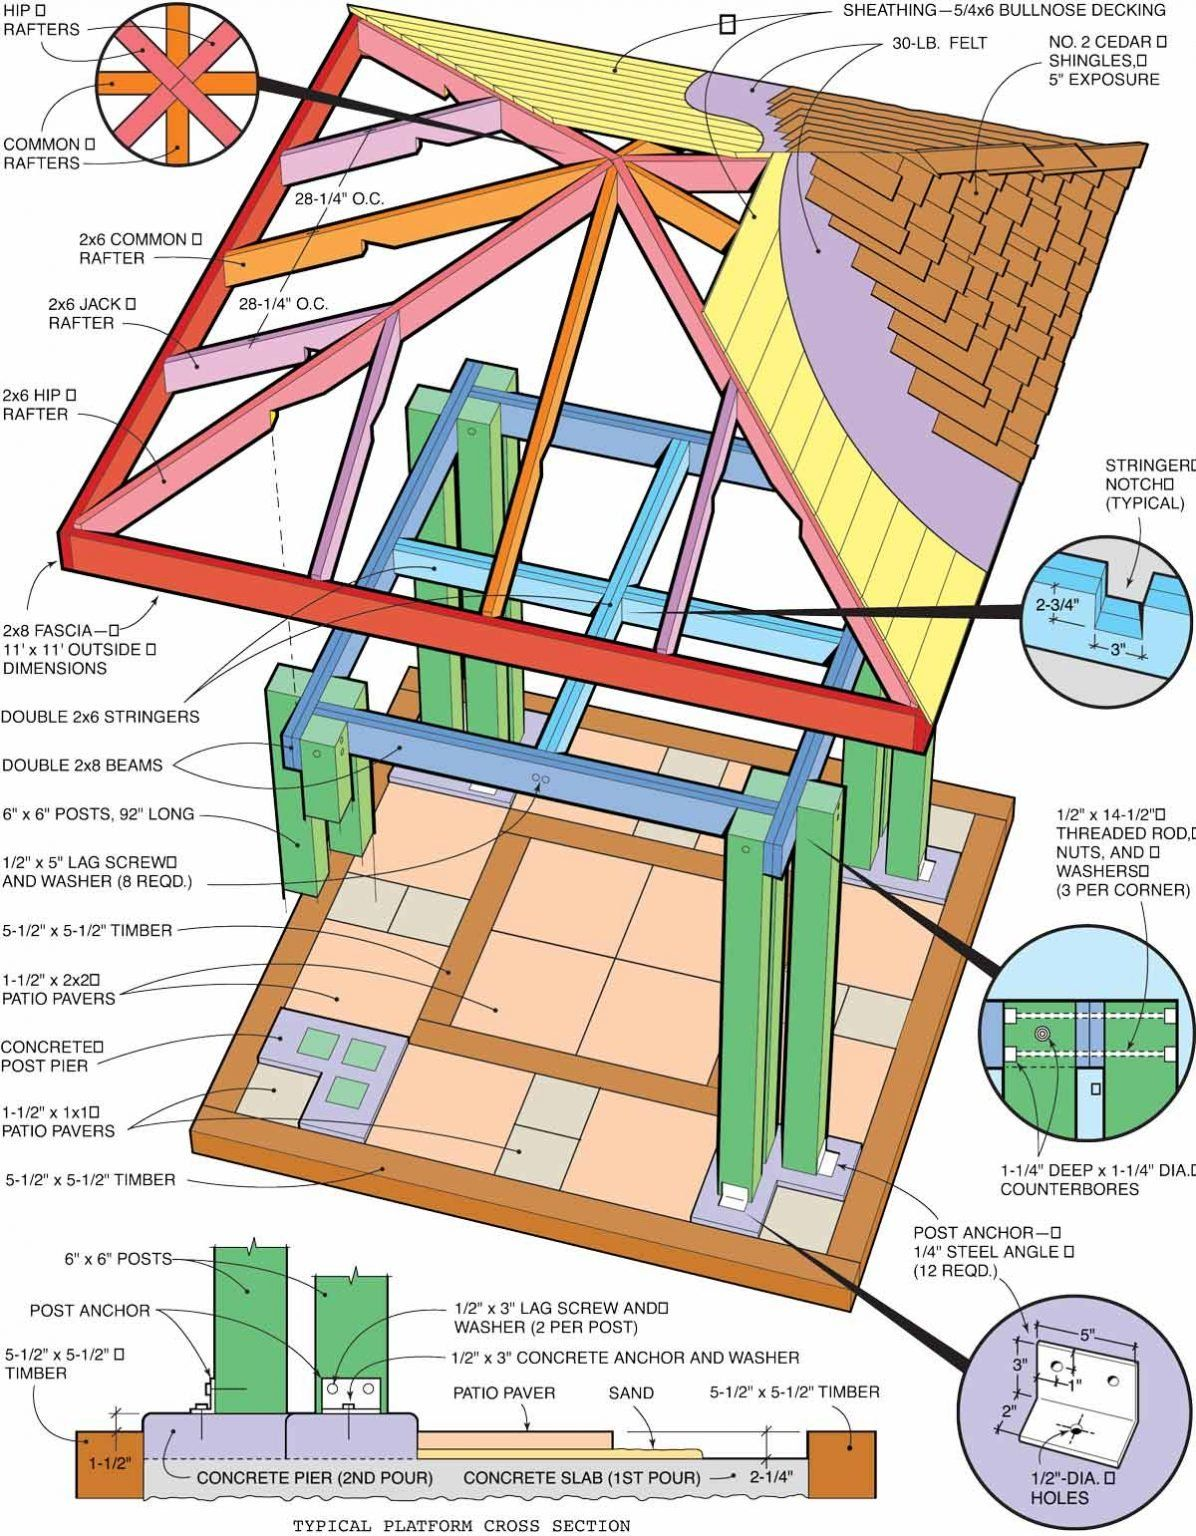 How To Build A Post And Beam Pavilion The Family Handyman In 2020 Post And Beam Pavilion Gazebo Plans